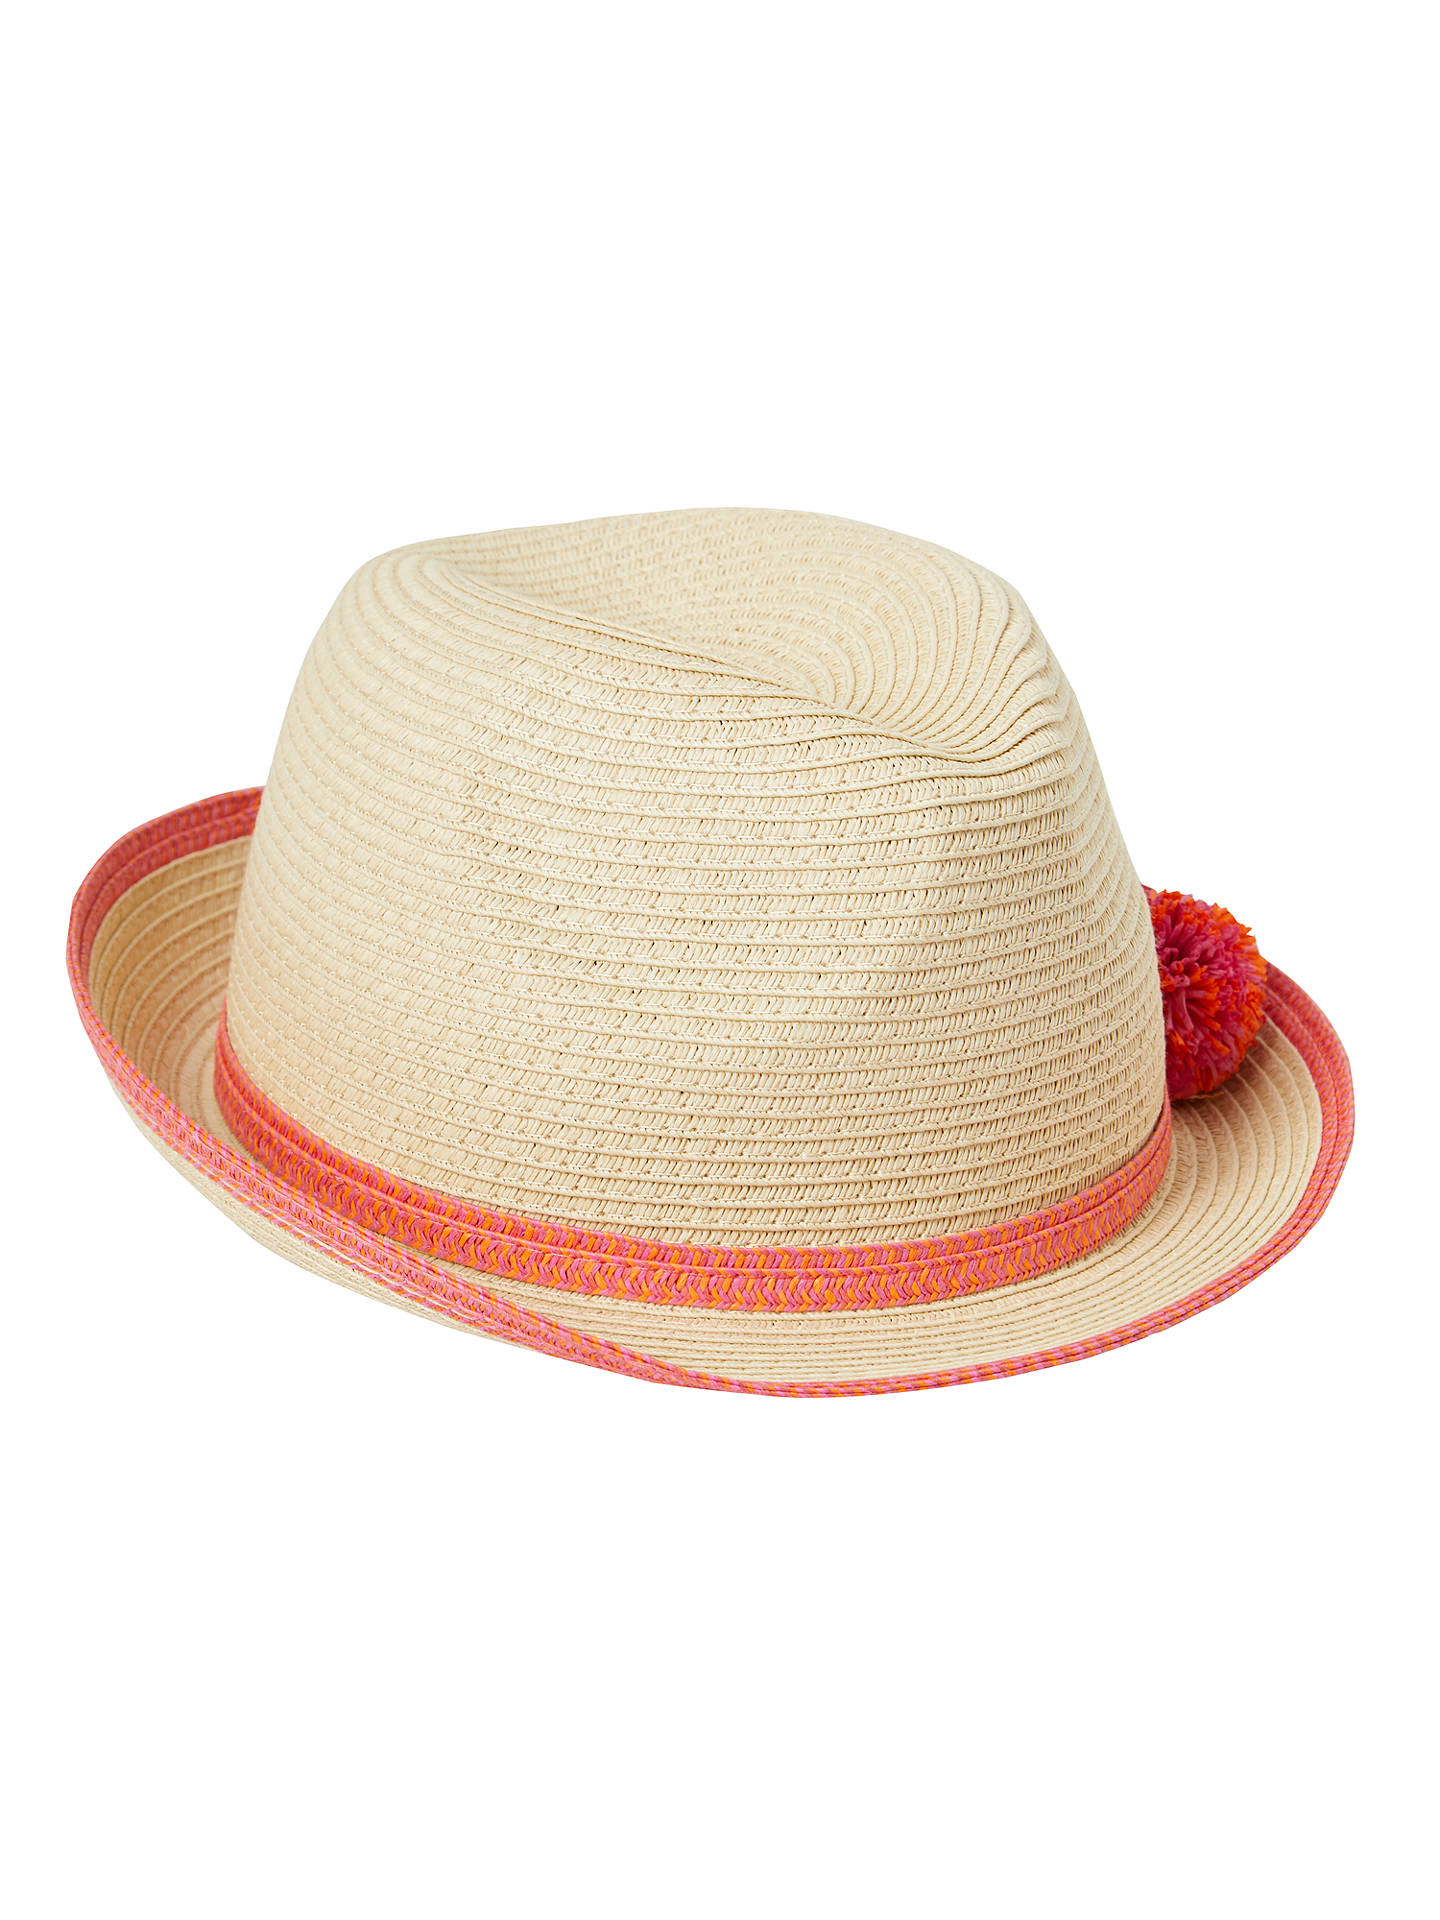 27854e40dc7a98 Buy John Lewis Children's Straw Trilby Hat with Pom Poms, Natural, S Online  at ...